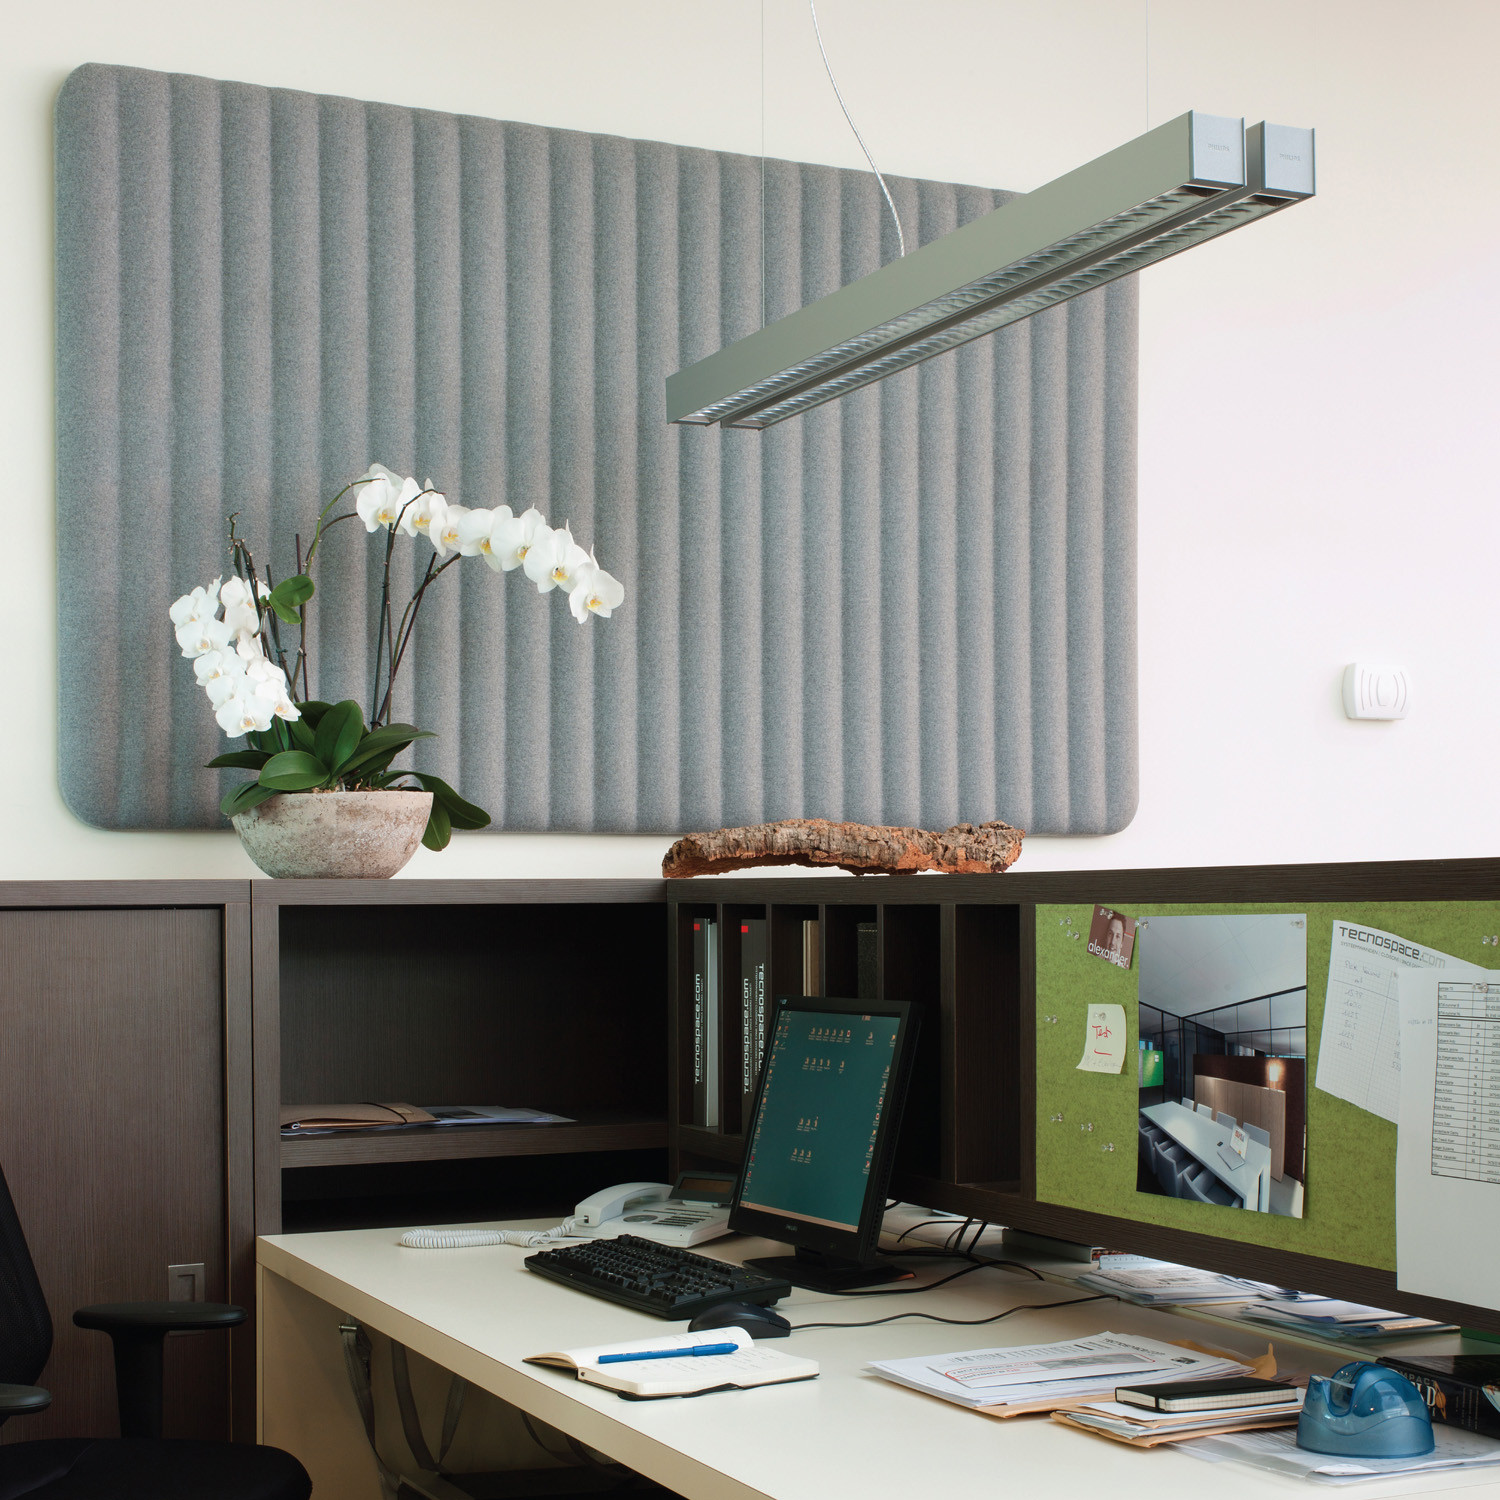 BuzziPod Wall Panels by BuzziSpace